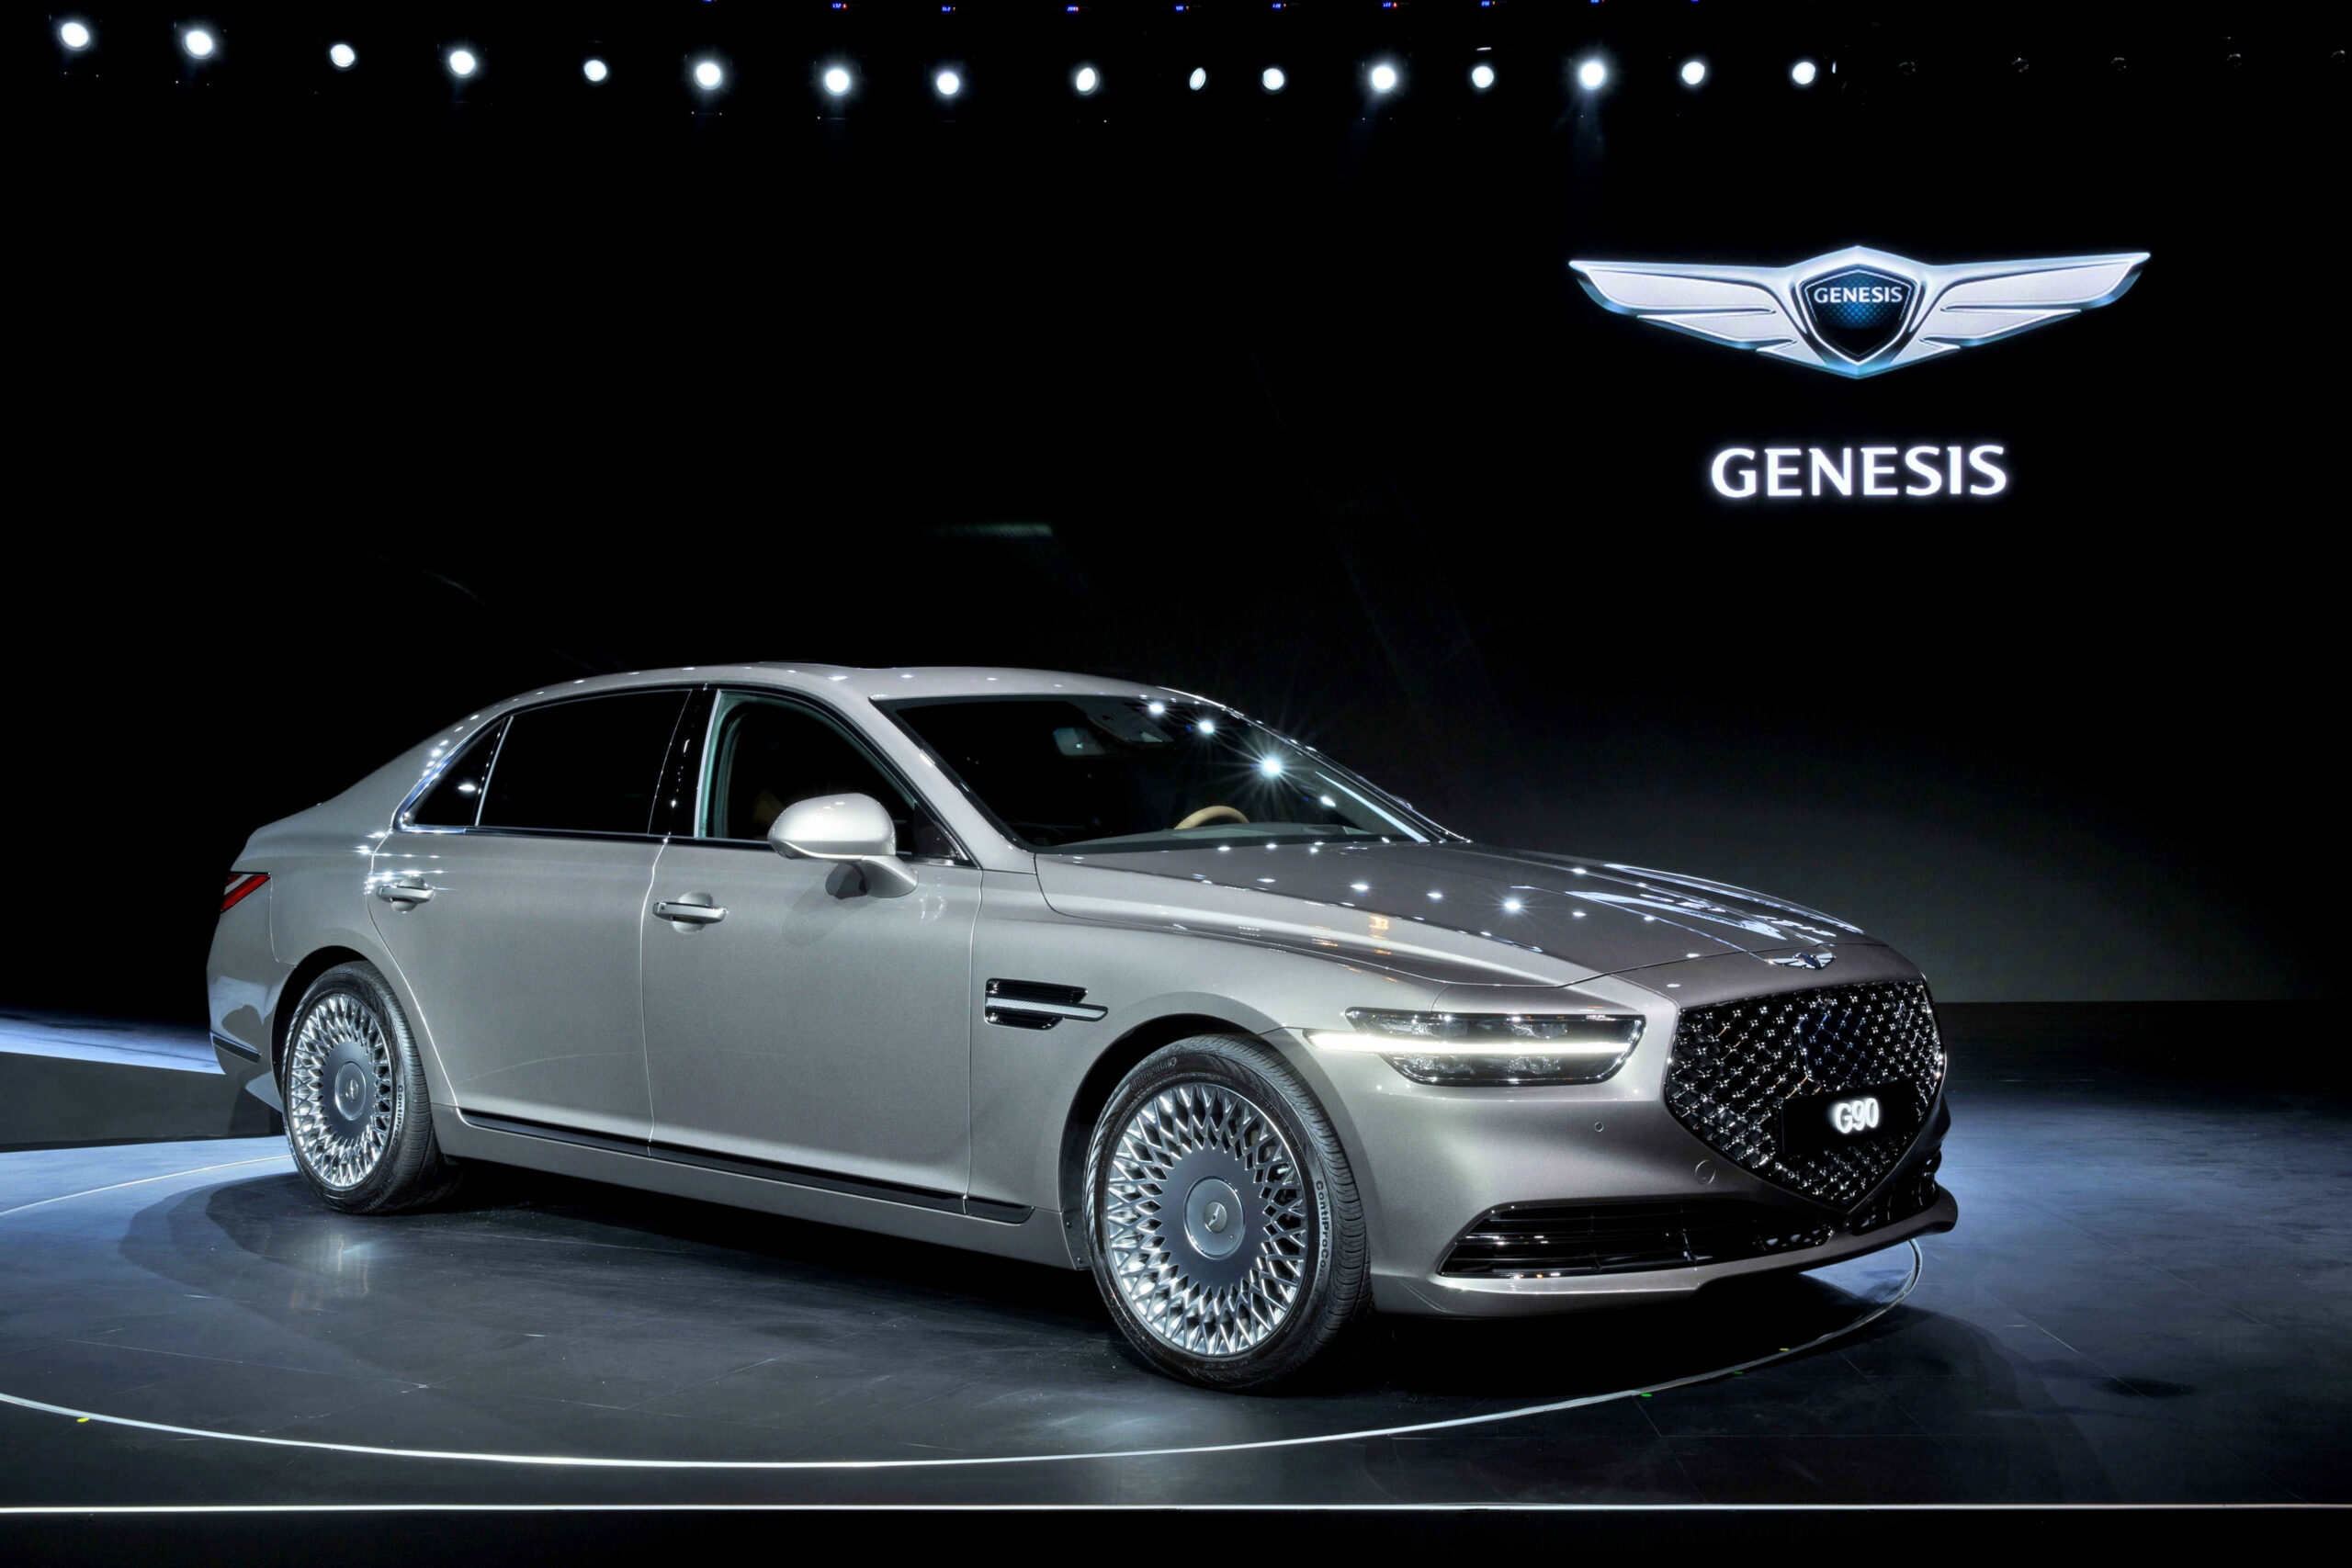 The 10 Genesis G10 Flagship Has New Style Inside and Out